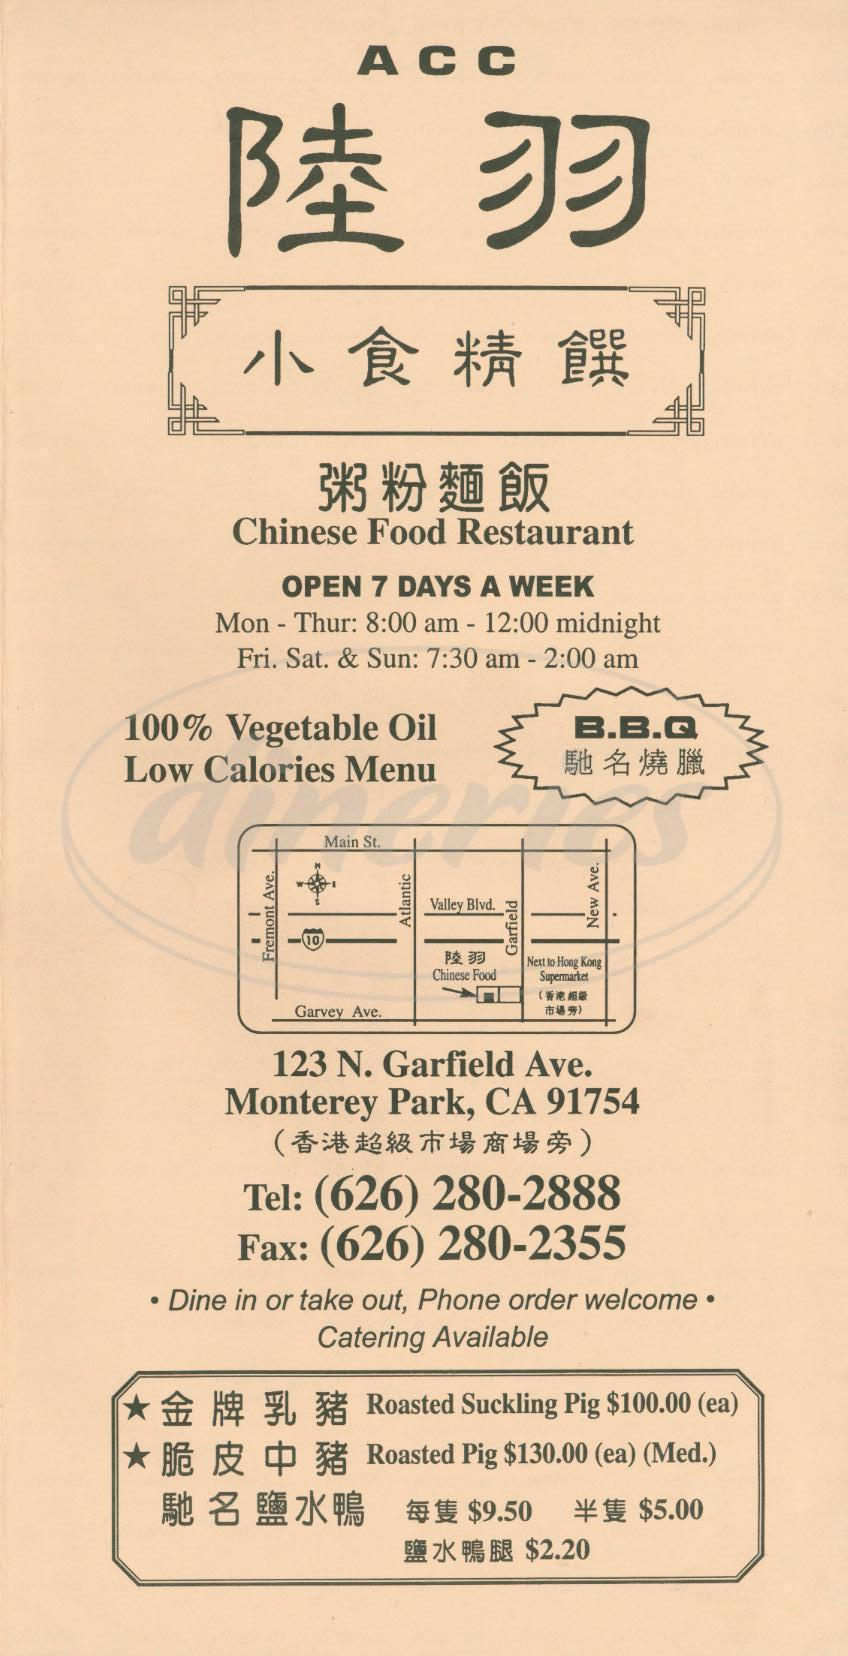 menu for ACC Chinese Food